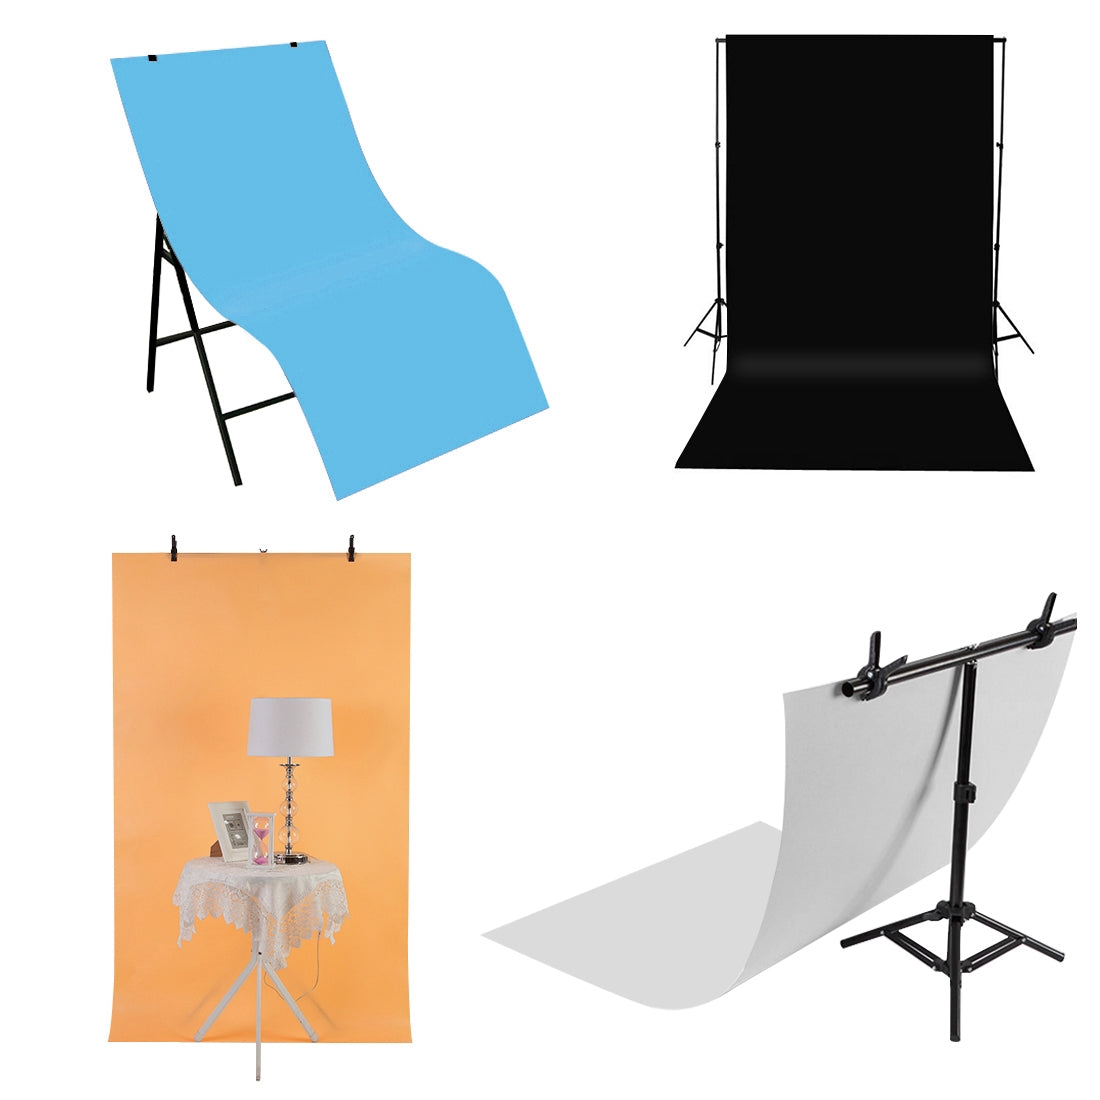 Photography Background PVC Paper Kits for Studio Tent Box, Size: 120cm x 60cm(Blue)